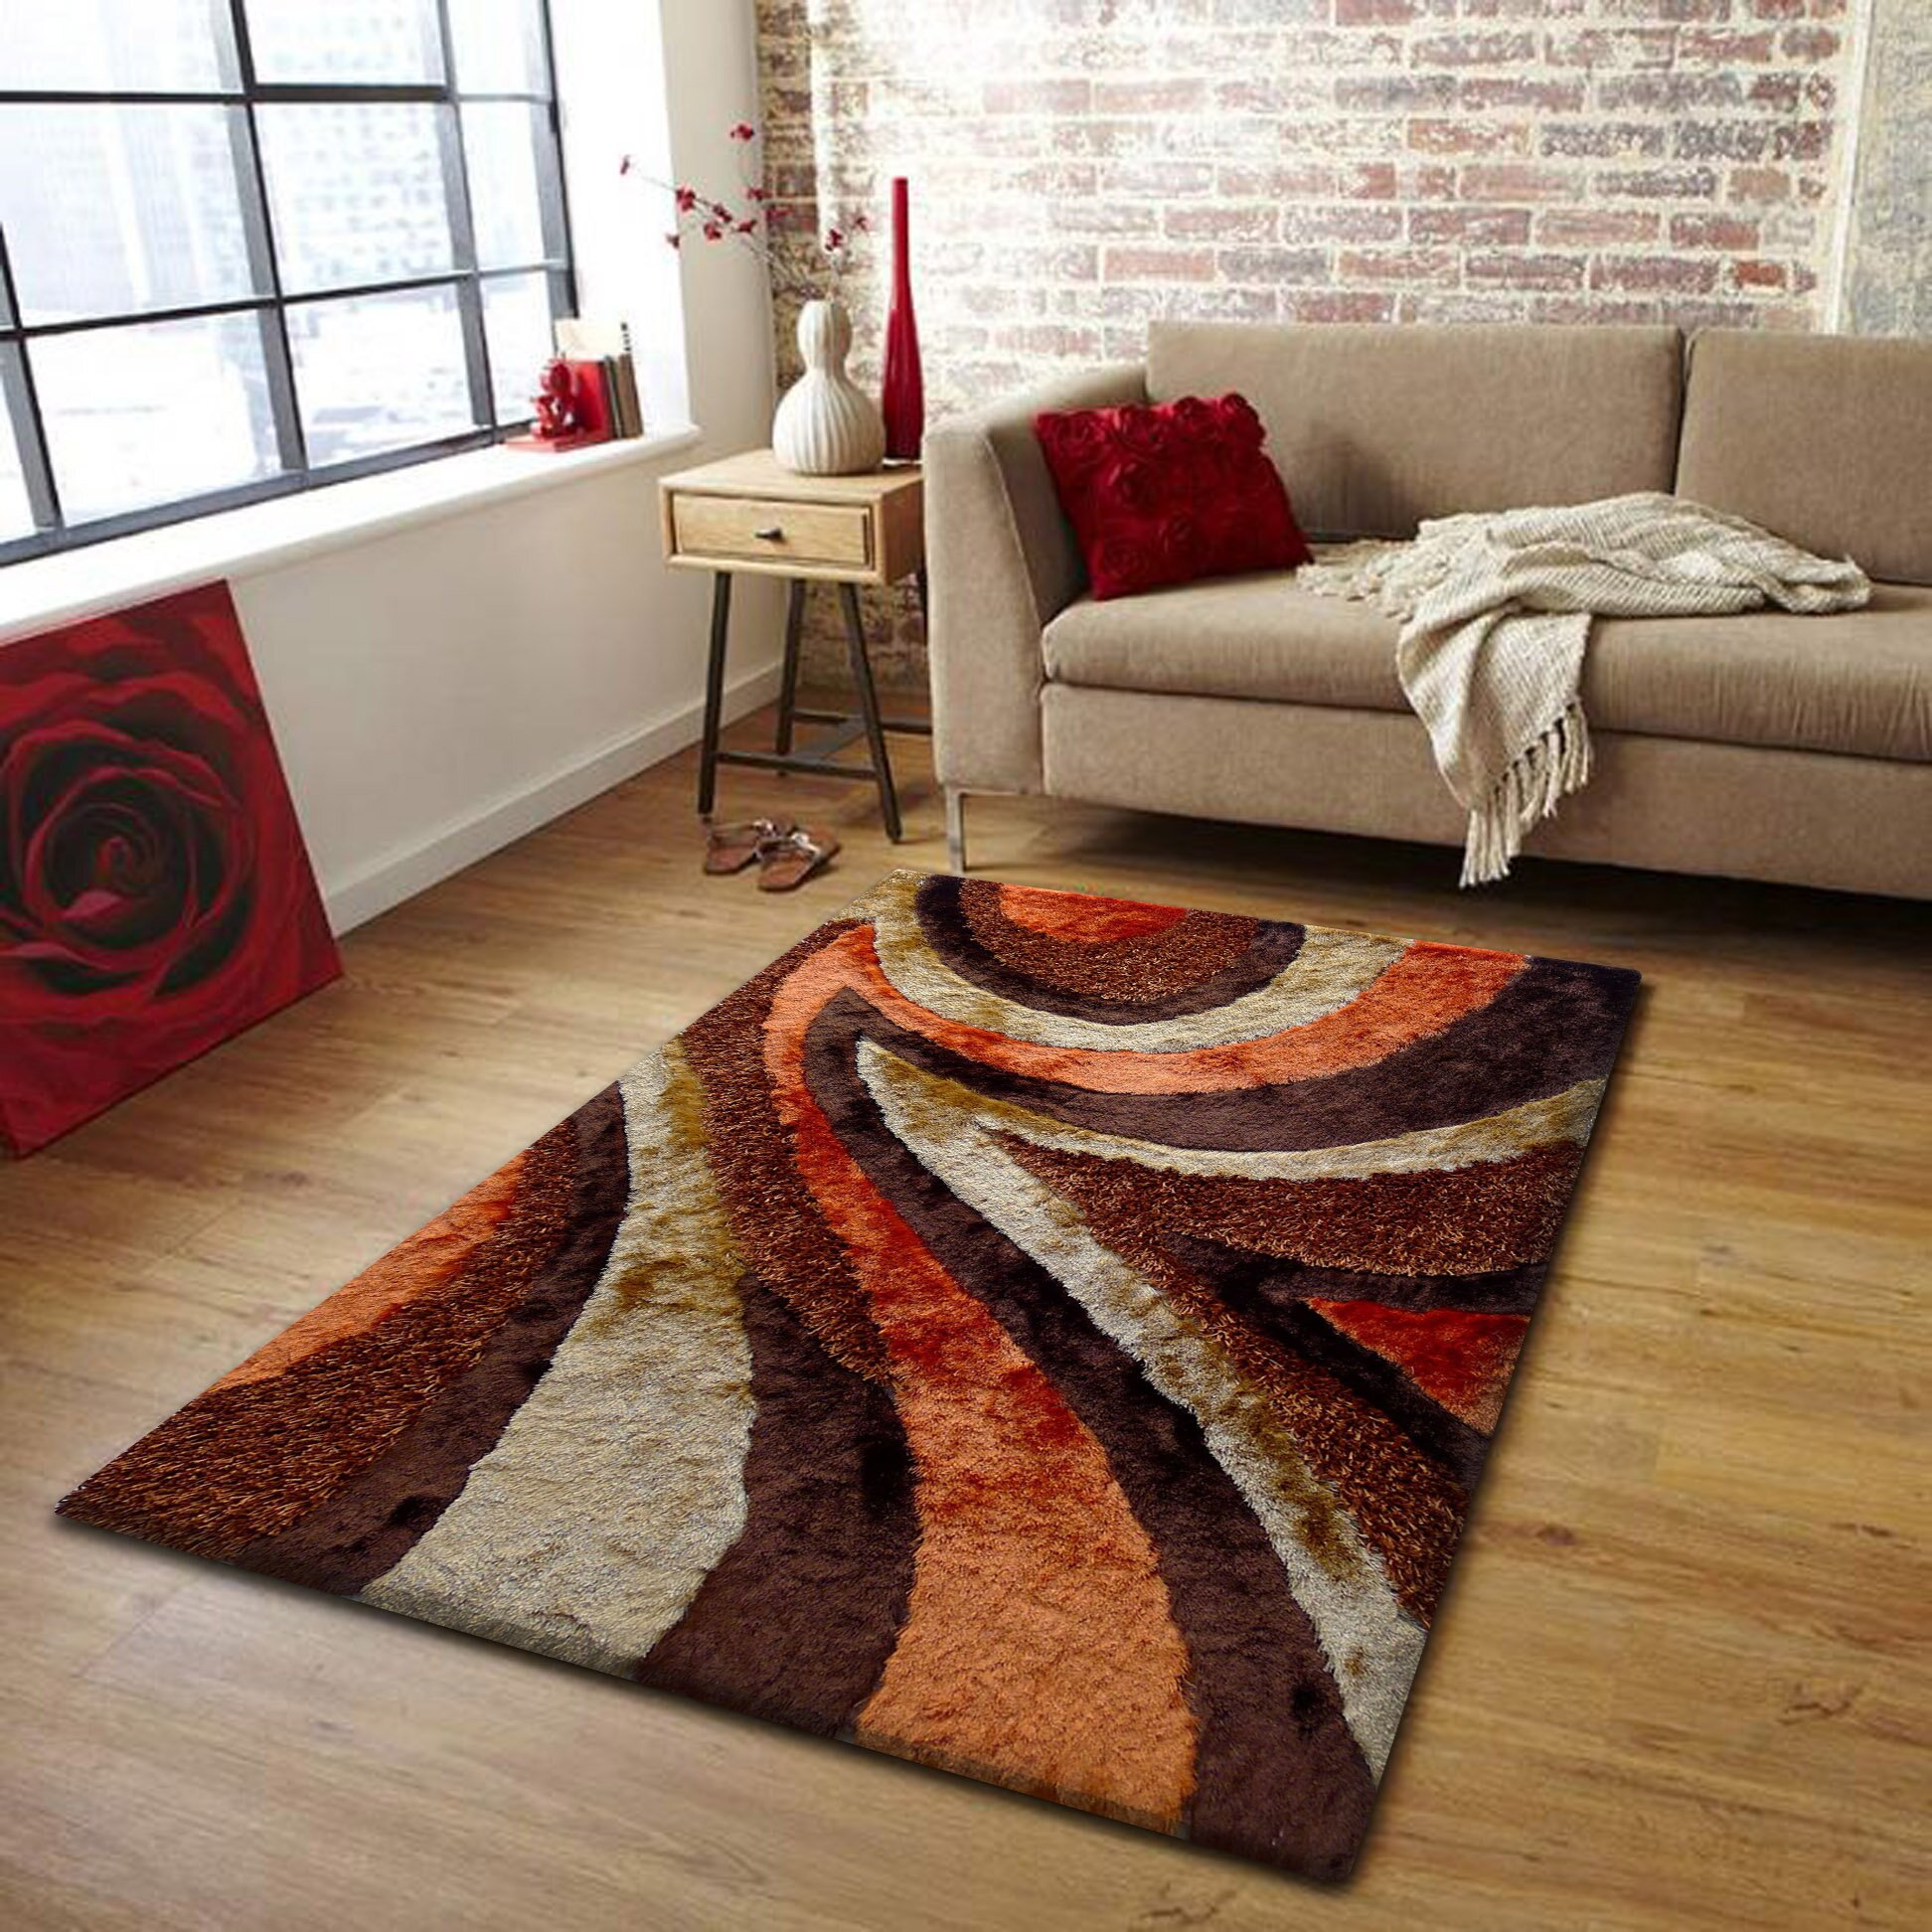 rug factory plus handtufted brownorange area rug. orange and brown area rug  roselawnlutheran